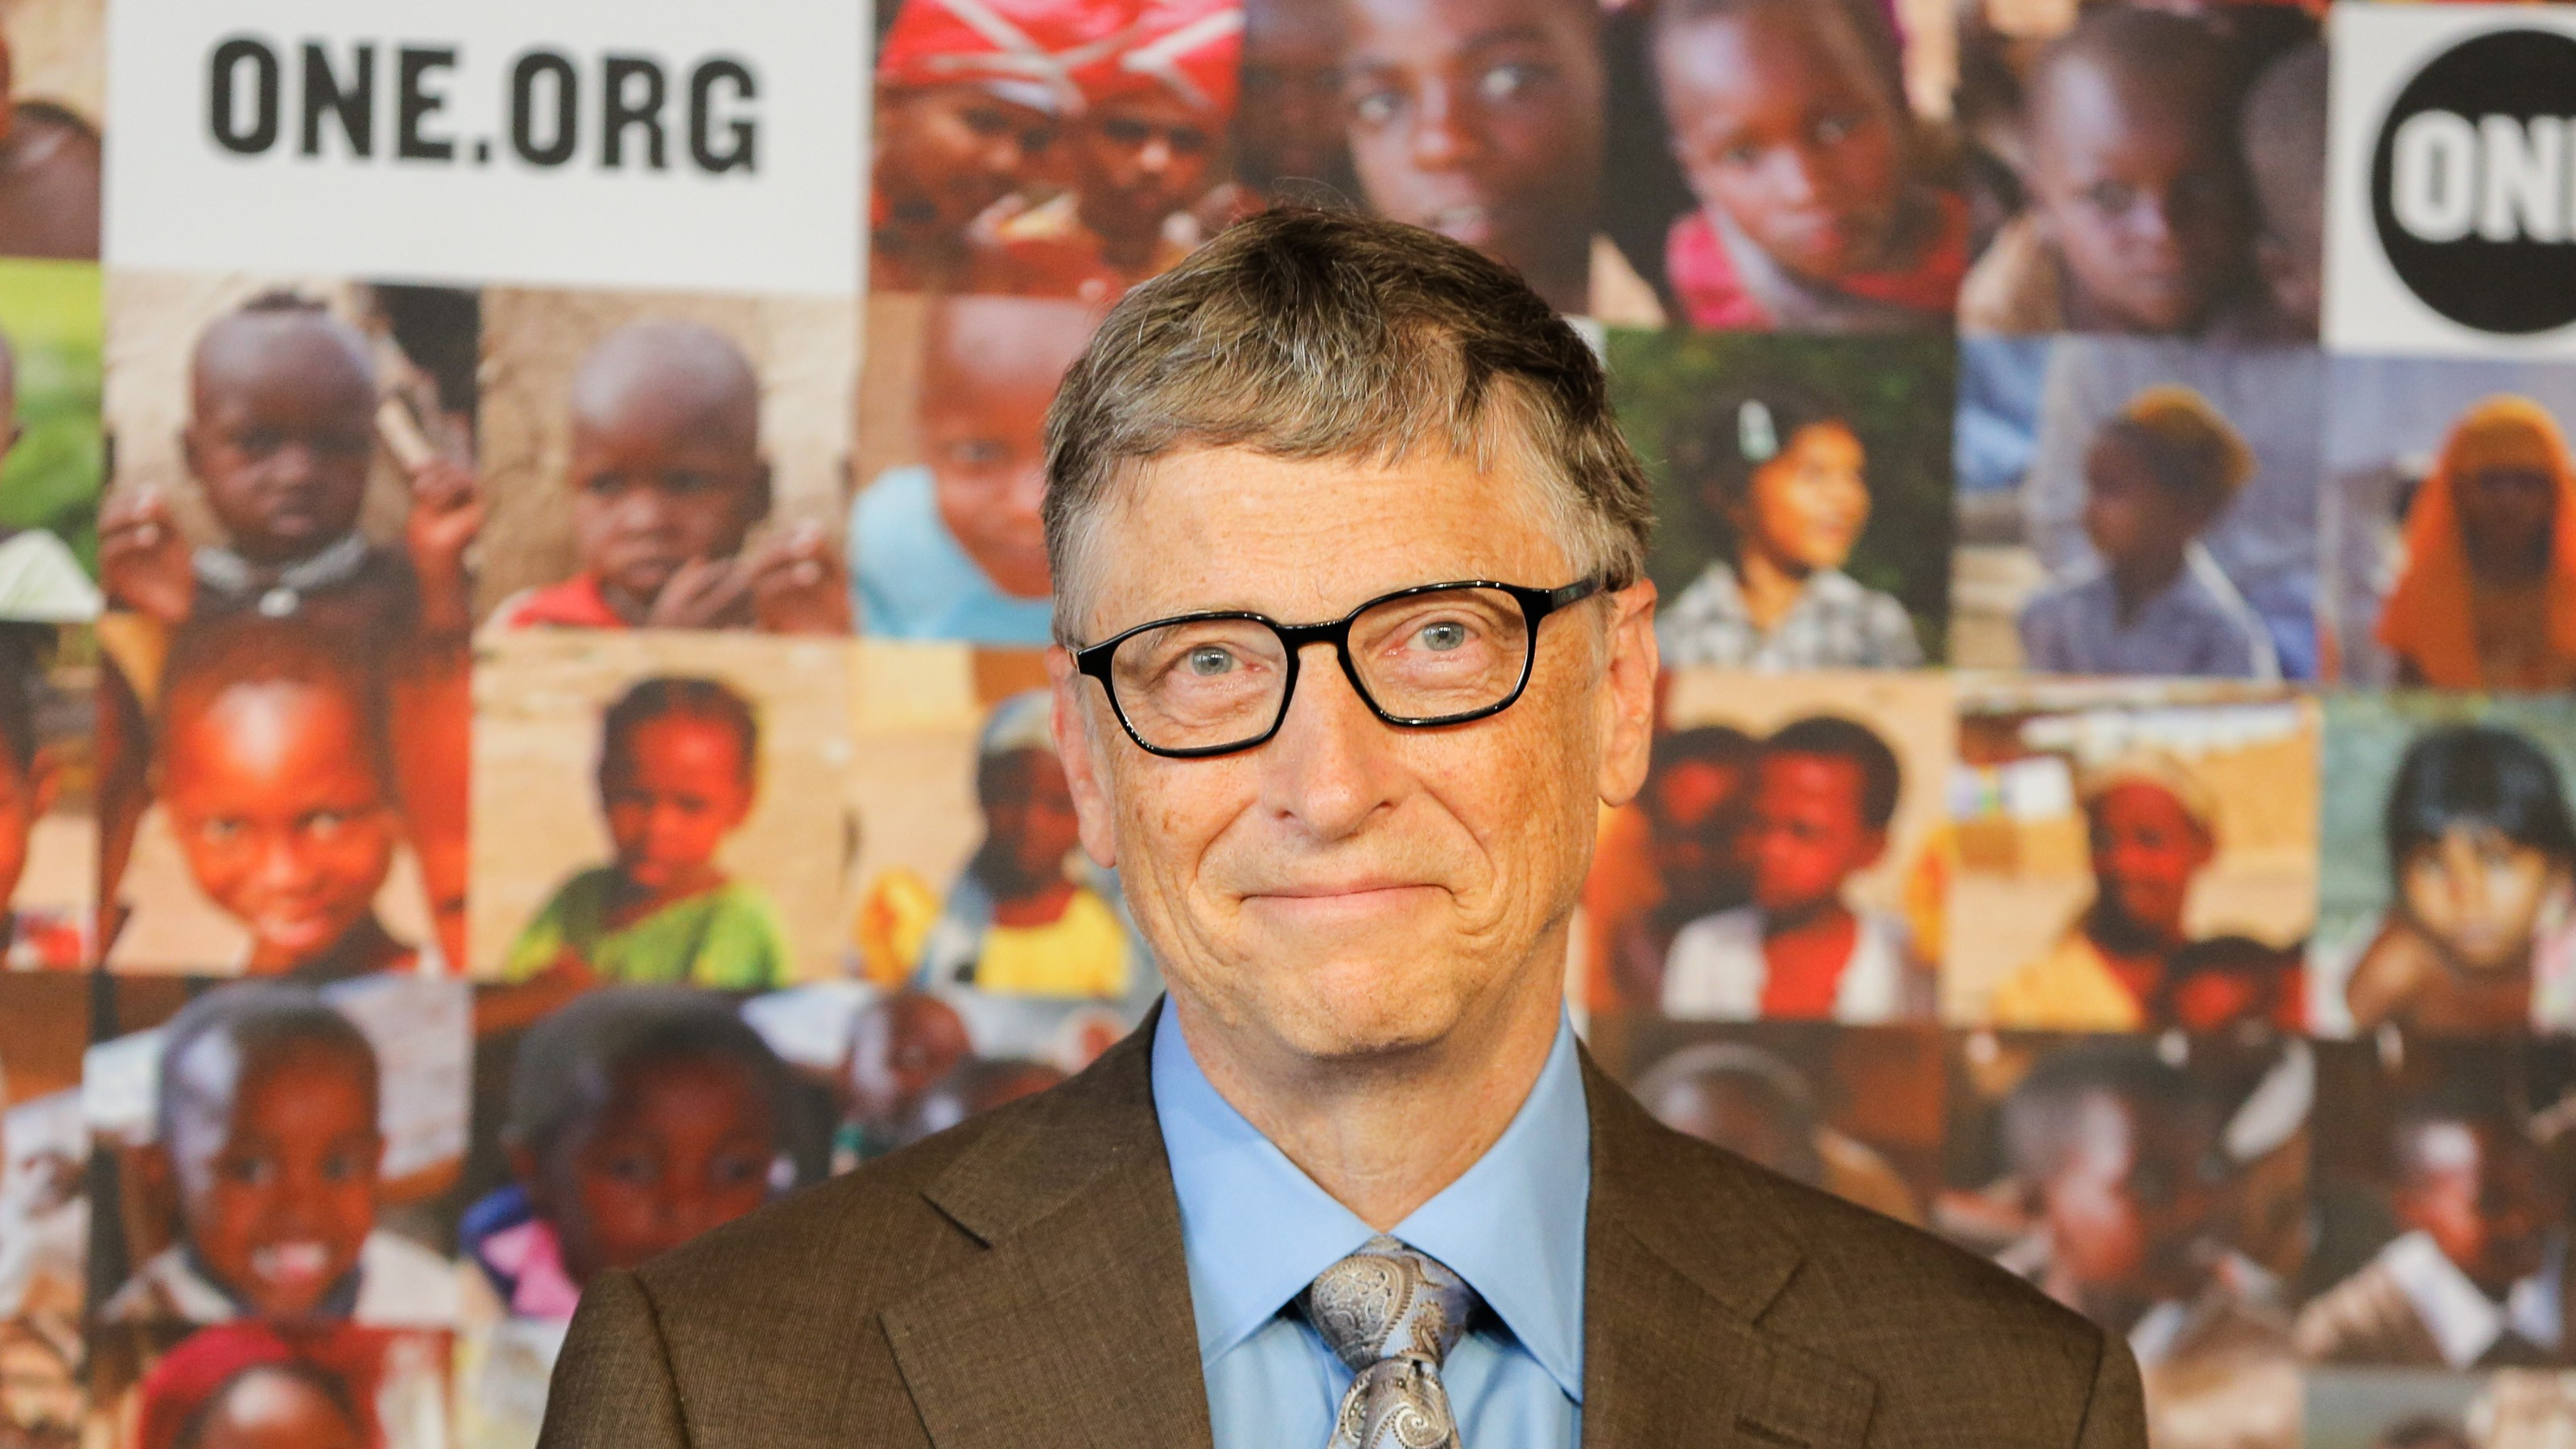 essay on bill gates achievements Bill gates – a success story bill gates was born on october 28, 1955 in seattle  in a family having rich business, political and community service background.